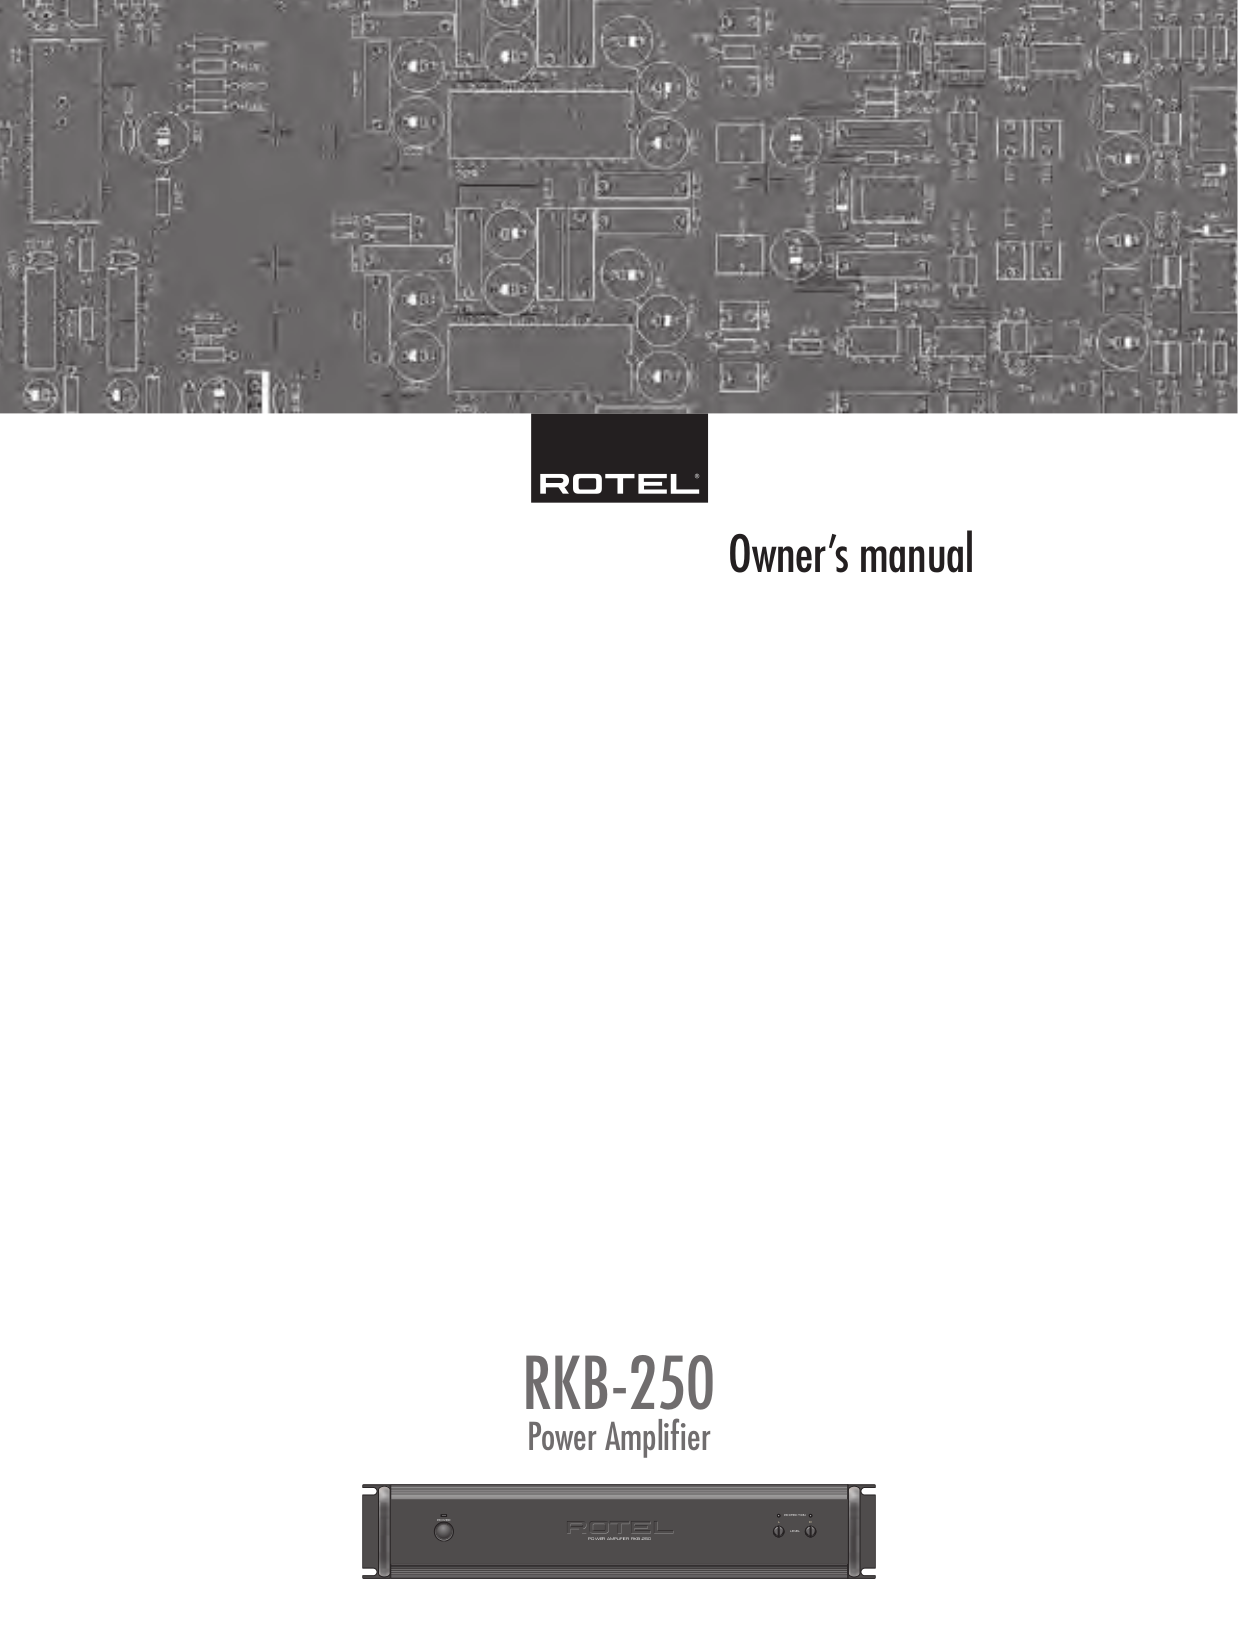 pdf for Rotel Amp RKB-250 manual